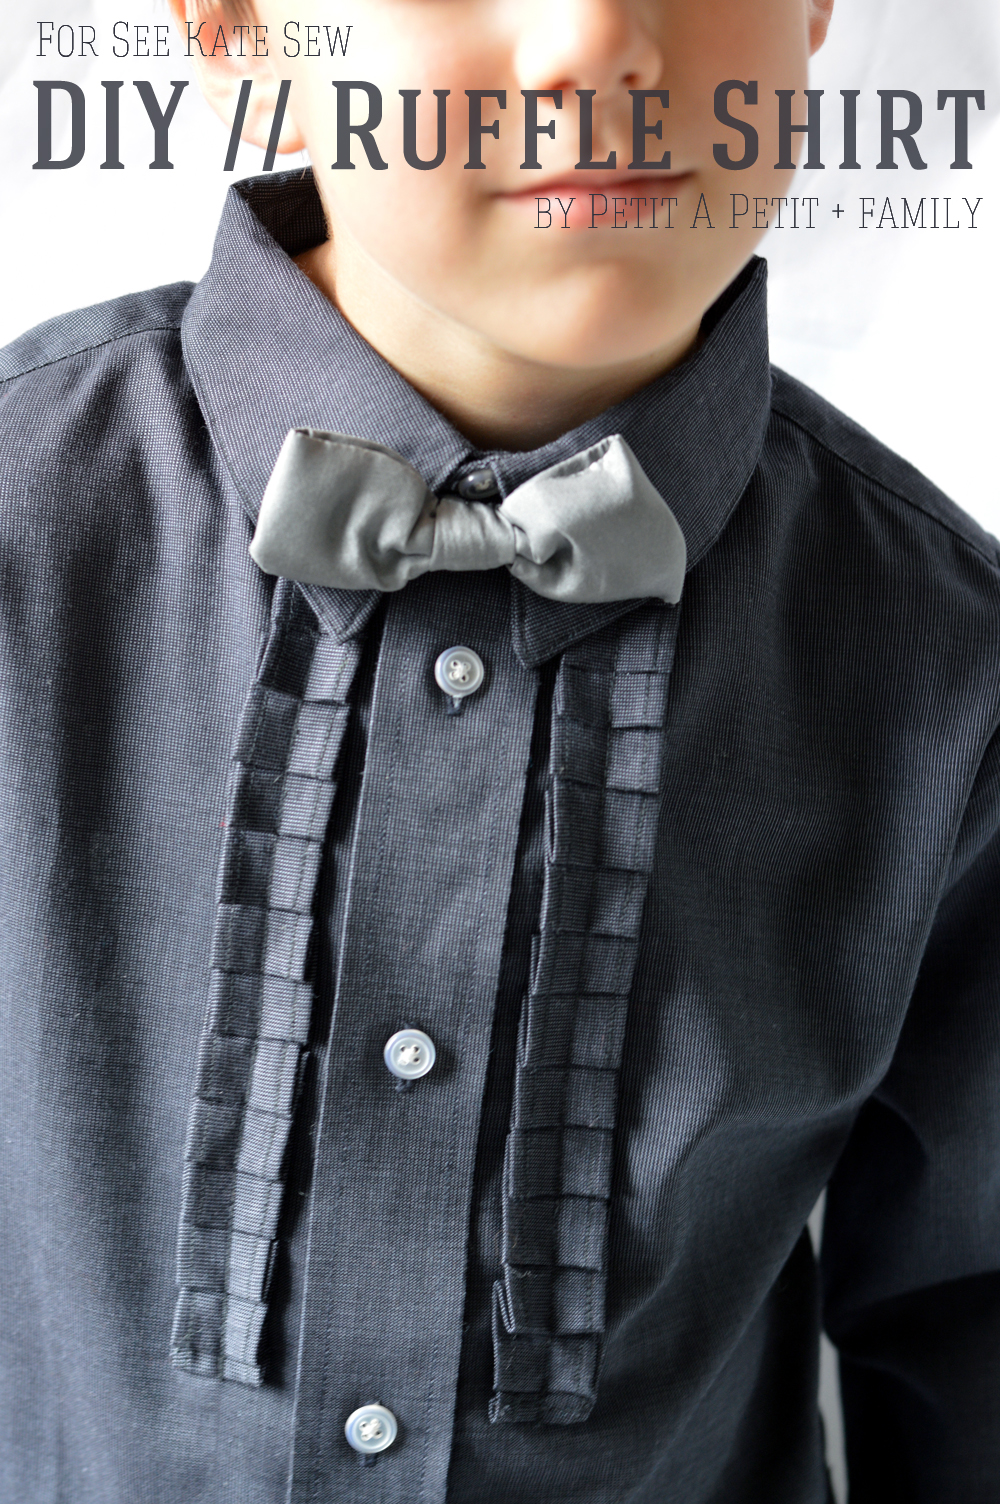 DIY ruffle shirt tutorial for BOYS! | kids clothing tutorials | sewing kids clothes | diy kids clothing | diy clothing for kids | sewing tutorials and tips | free sewing tutorials | sewing patterns for kids clothing || See Kate Sew